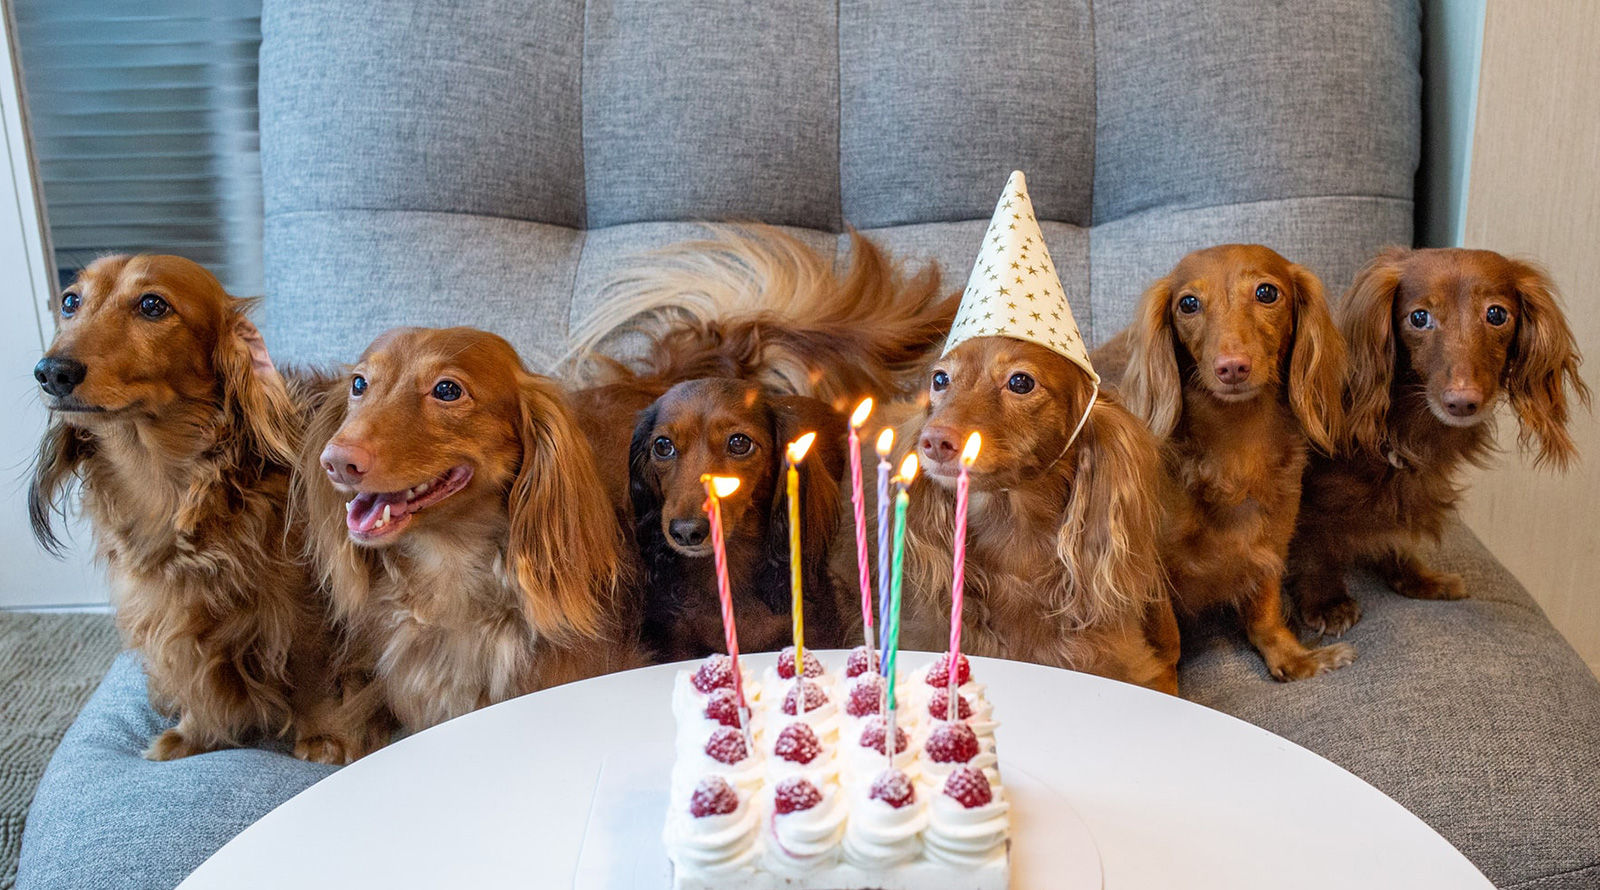 Find your reason to celebrate with a free health and wellness checkup for your pet!